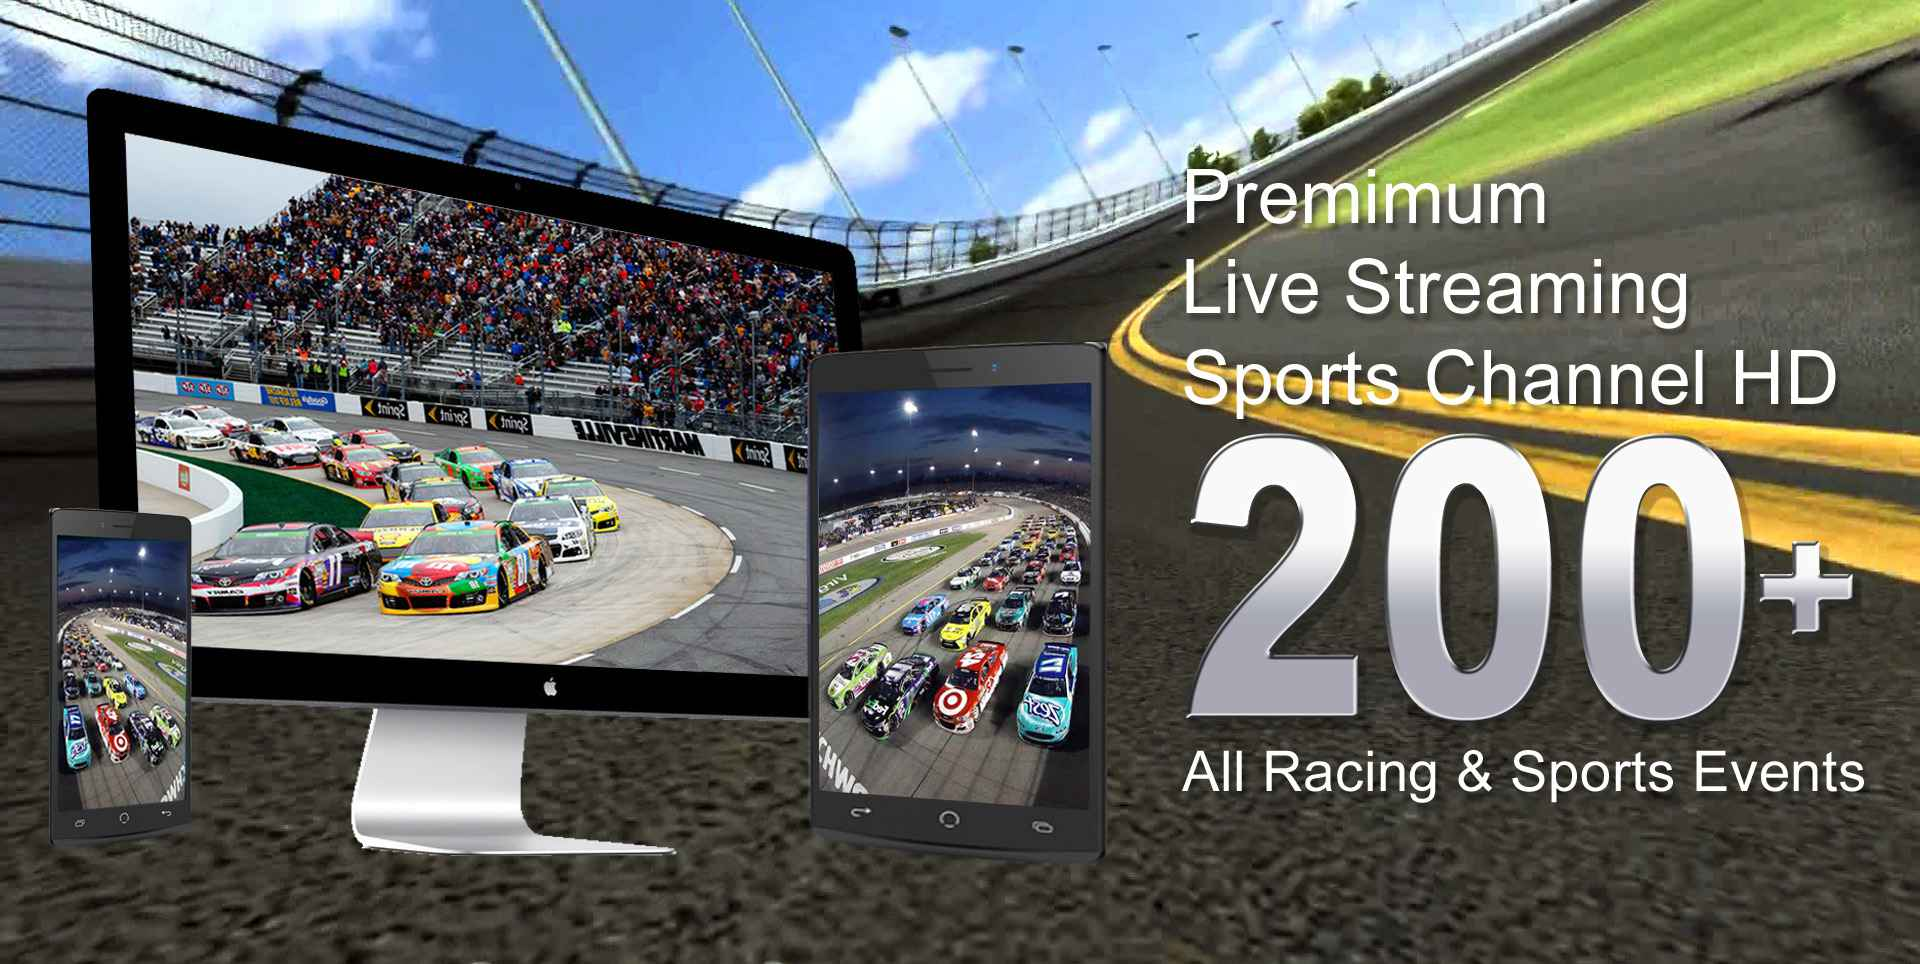 camping-world-500-live-at-phoenix